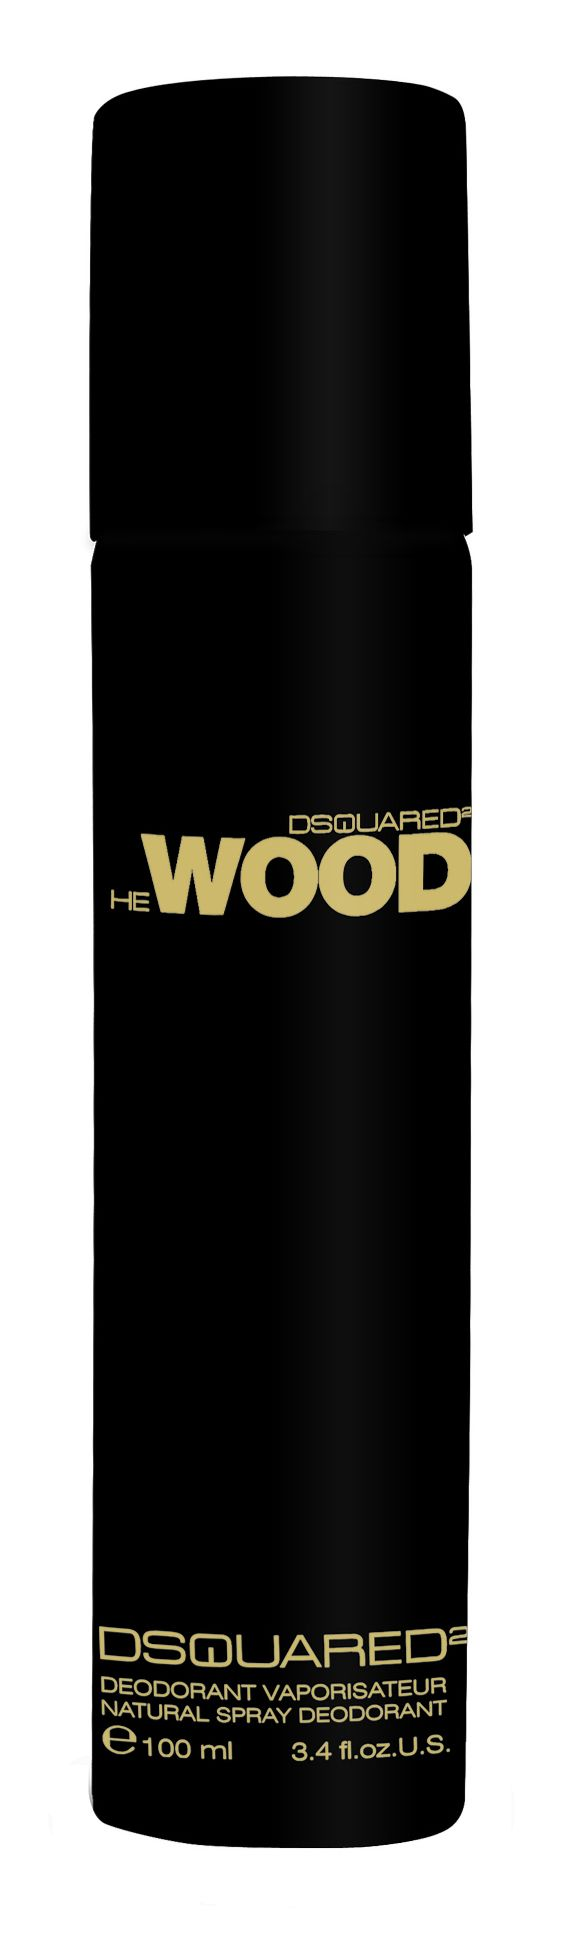 He Wood Natural Spray deodorant 100ml